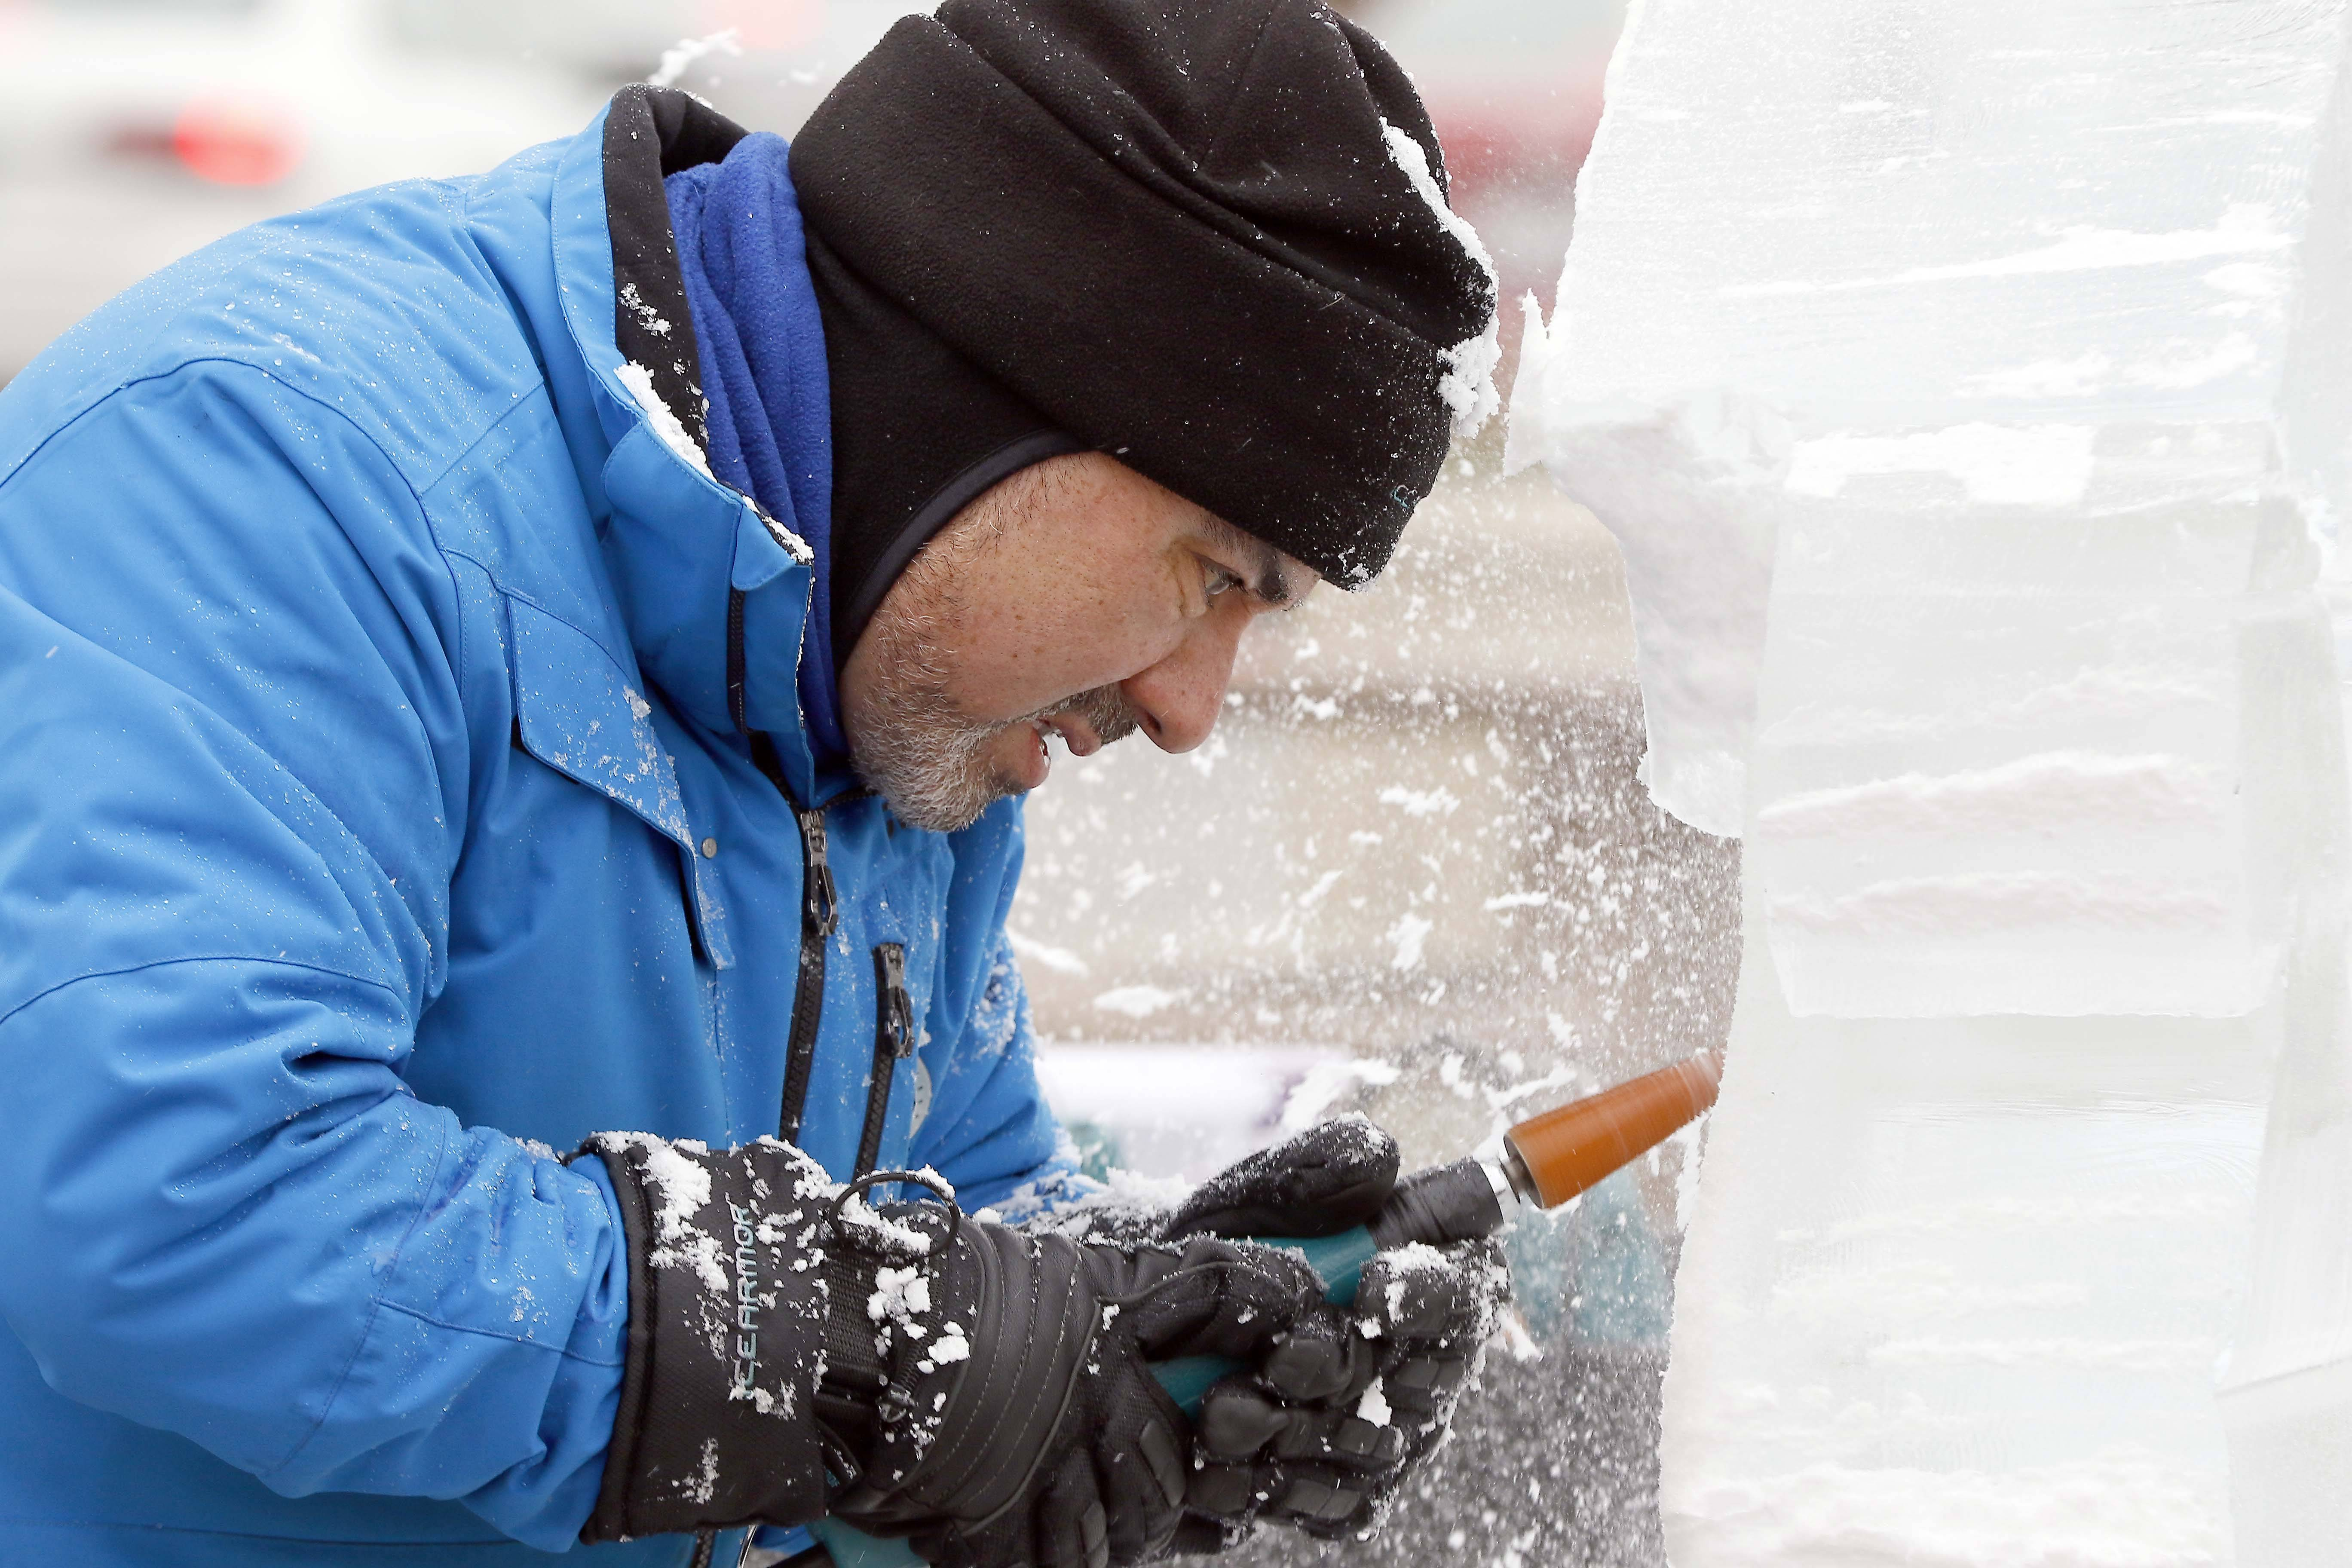 Jim Bringas of Chicago Ice Works carves a dragon Saturday during the Ice (Cubed) Festival in downtown Wheaton. He said this sculpture should take him about an hour and a half to complete. Bringas has been carving ice for more than 25 years.